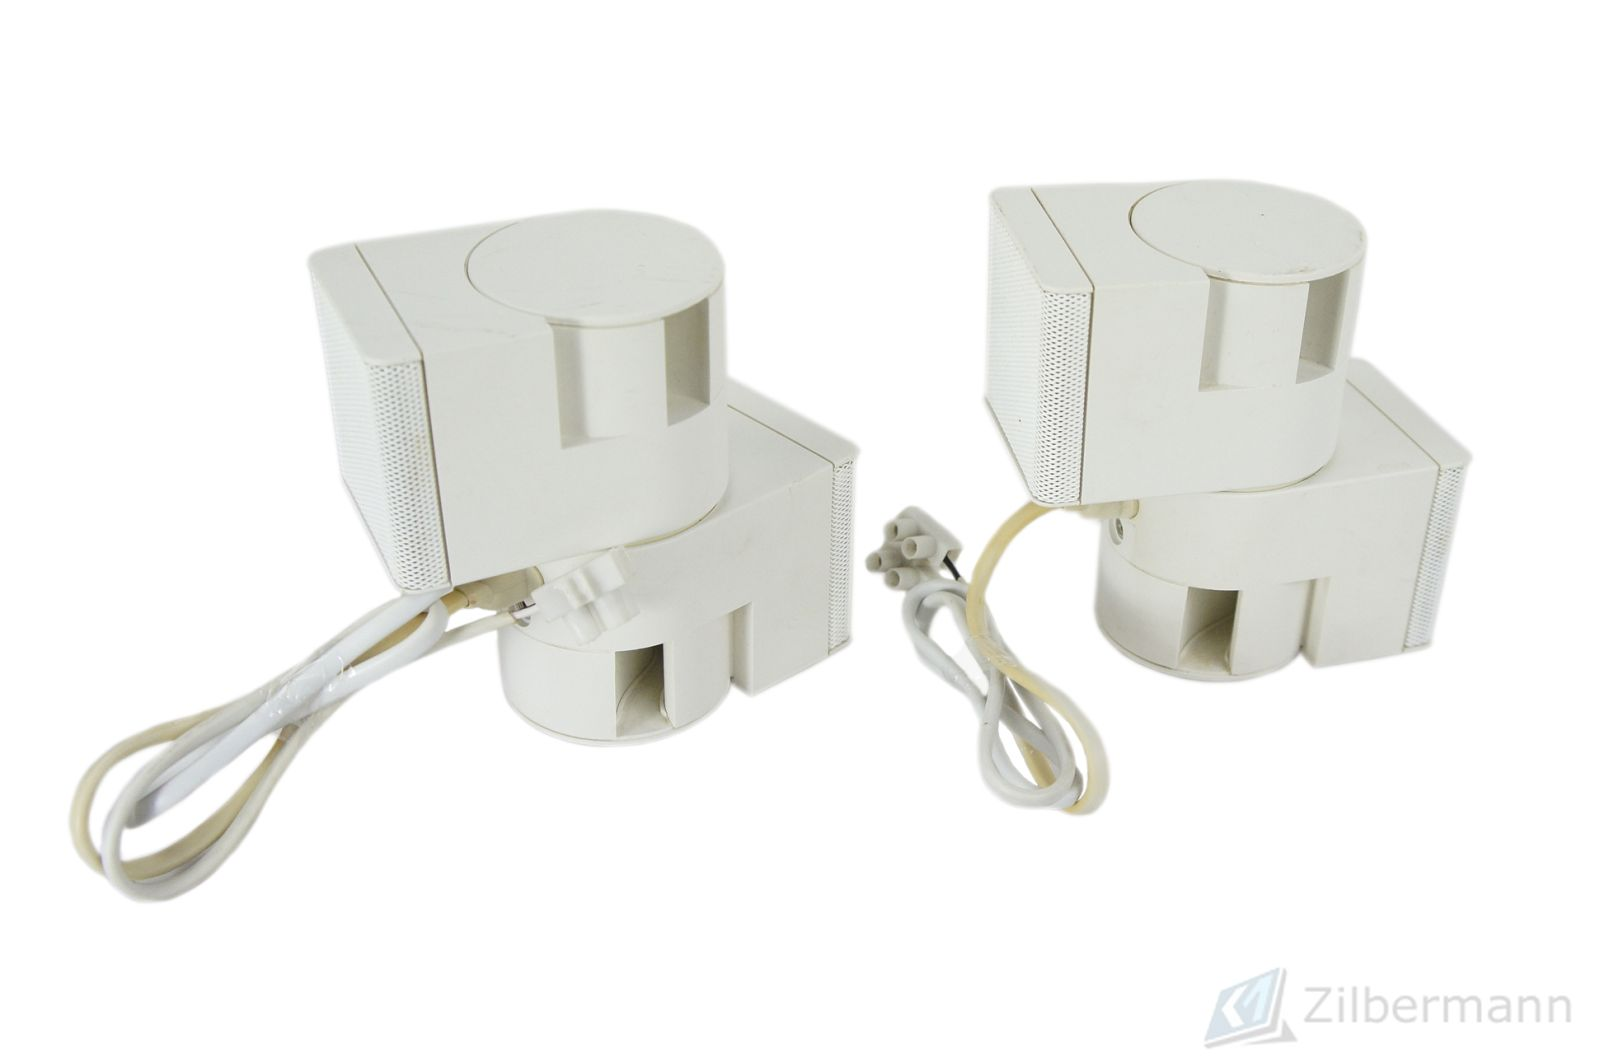 2x_Bose_Jewel_Cubes_Boxen_Satelliten_mit_Adapter_Weiss_05